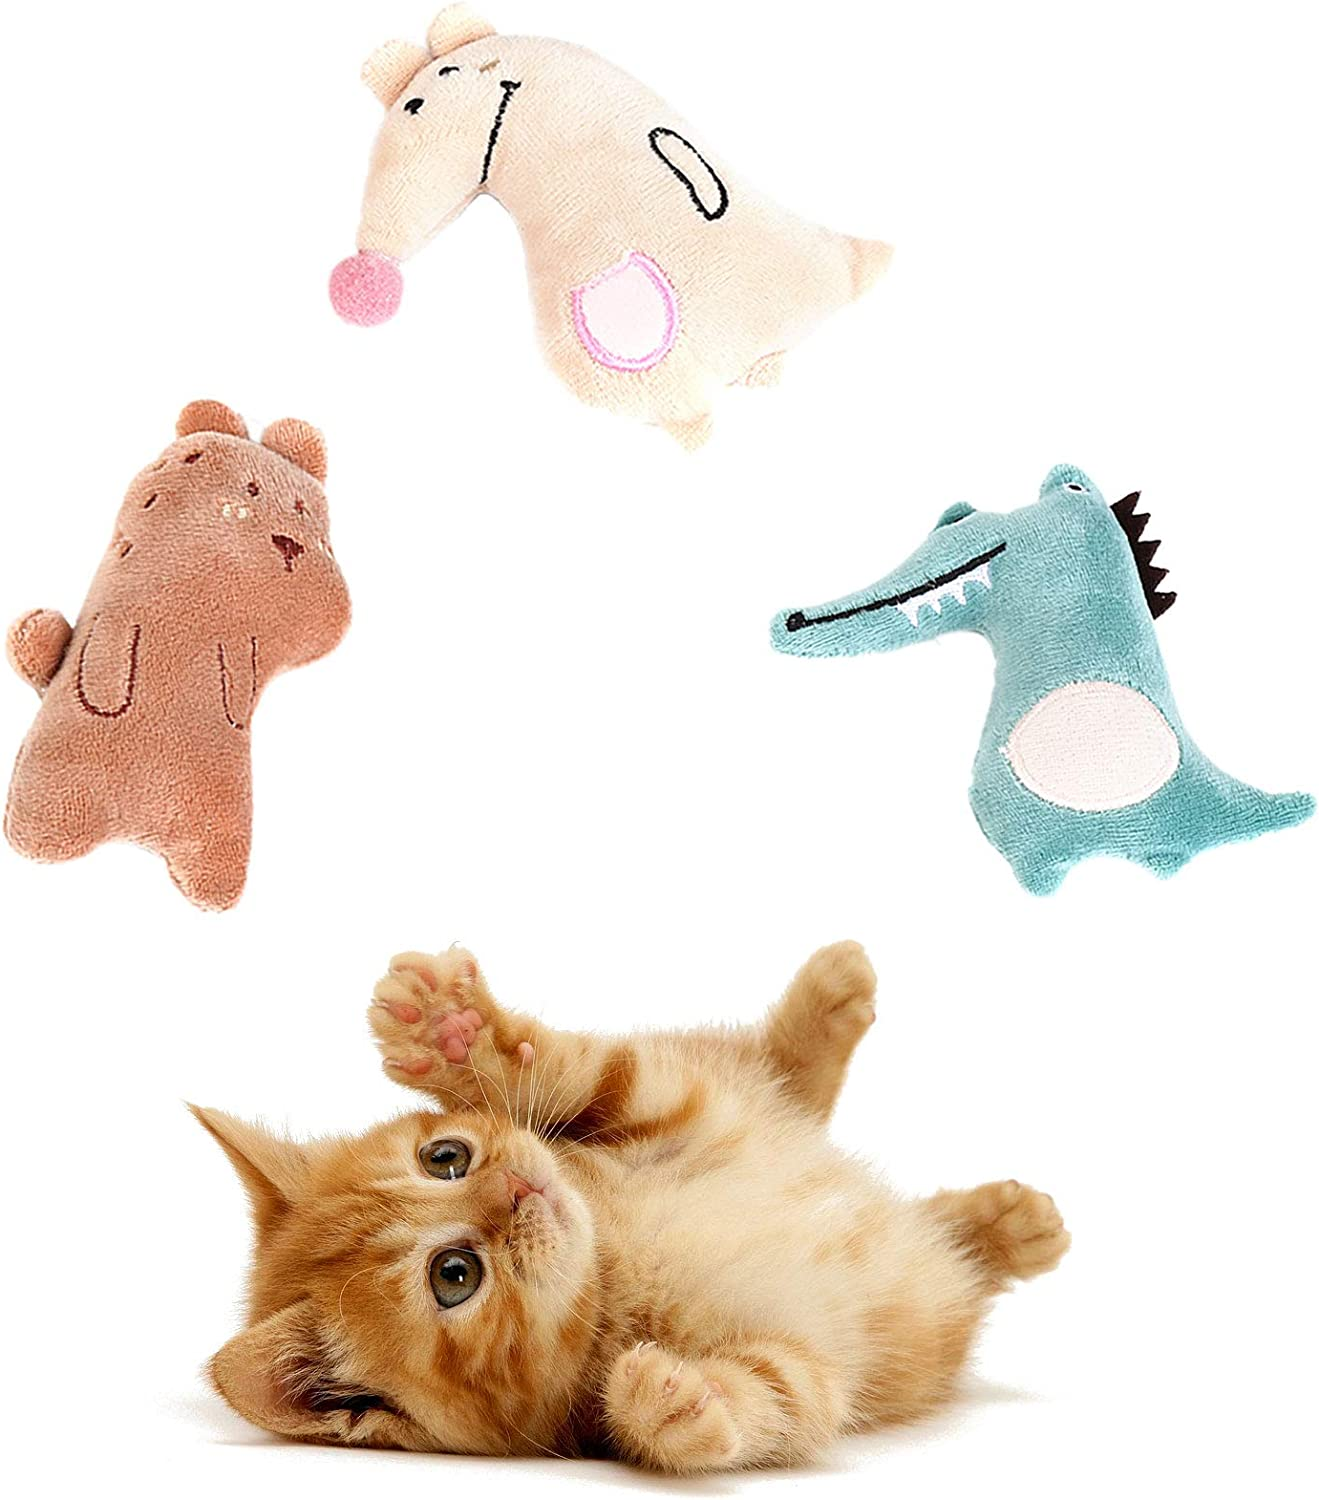 Cute Paws Christmas Cat Toy Gifts Max 83% OFF Stocking Set Intera Kitten Free shipping on posting reviews